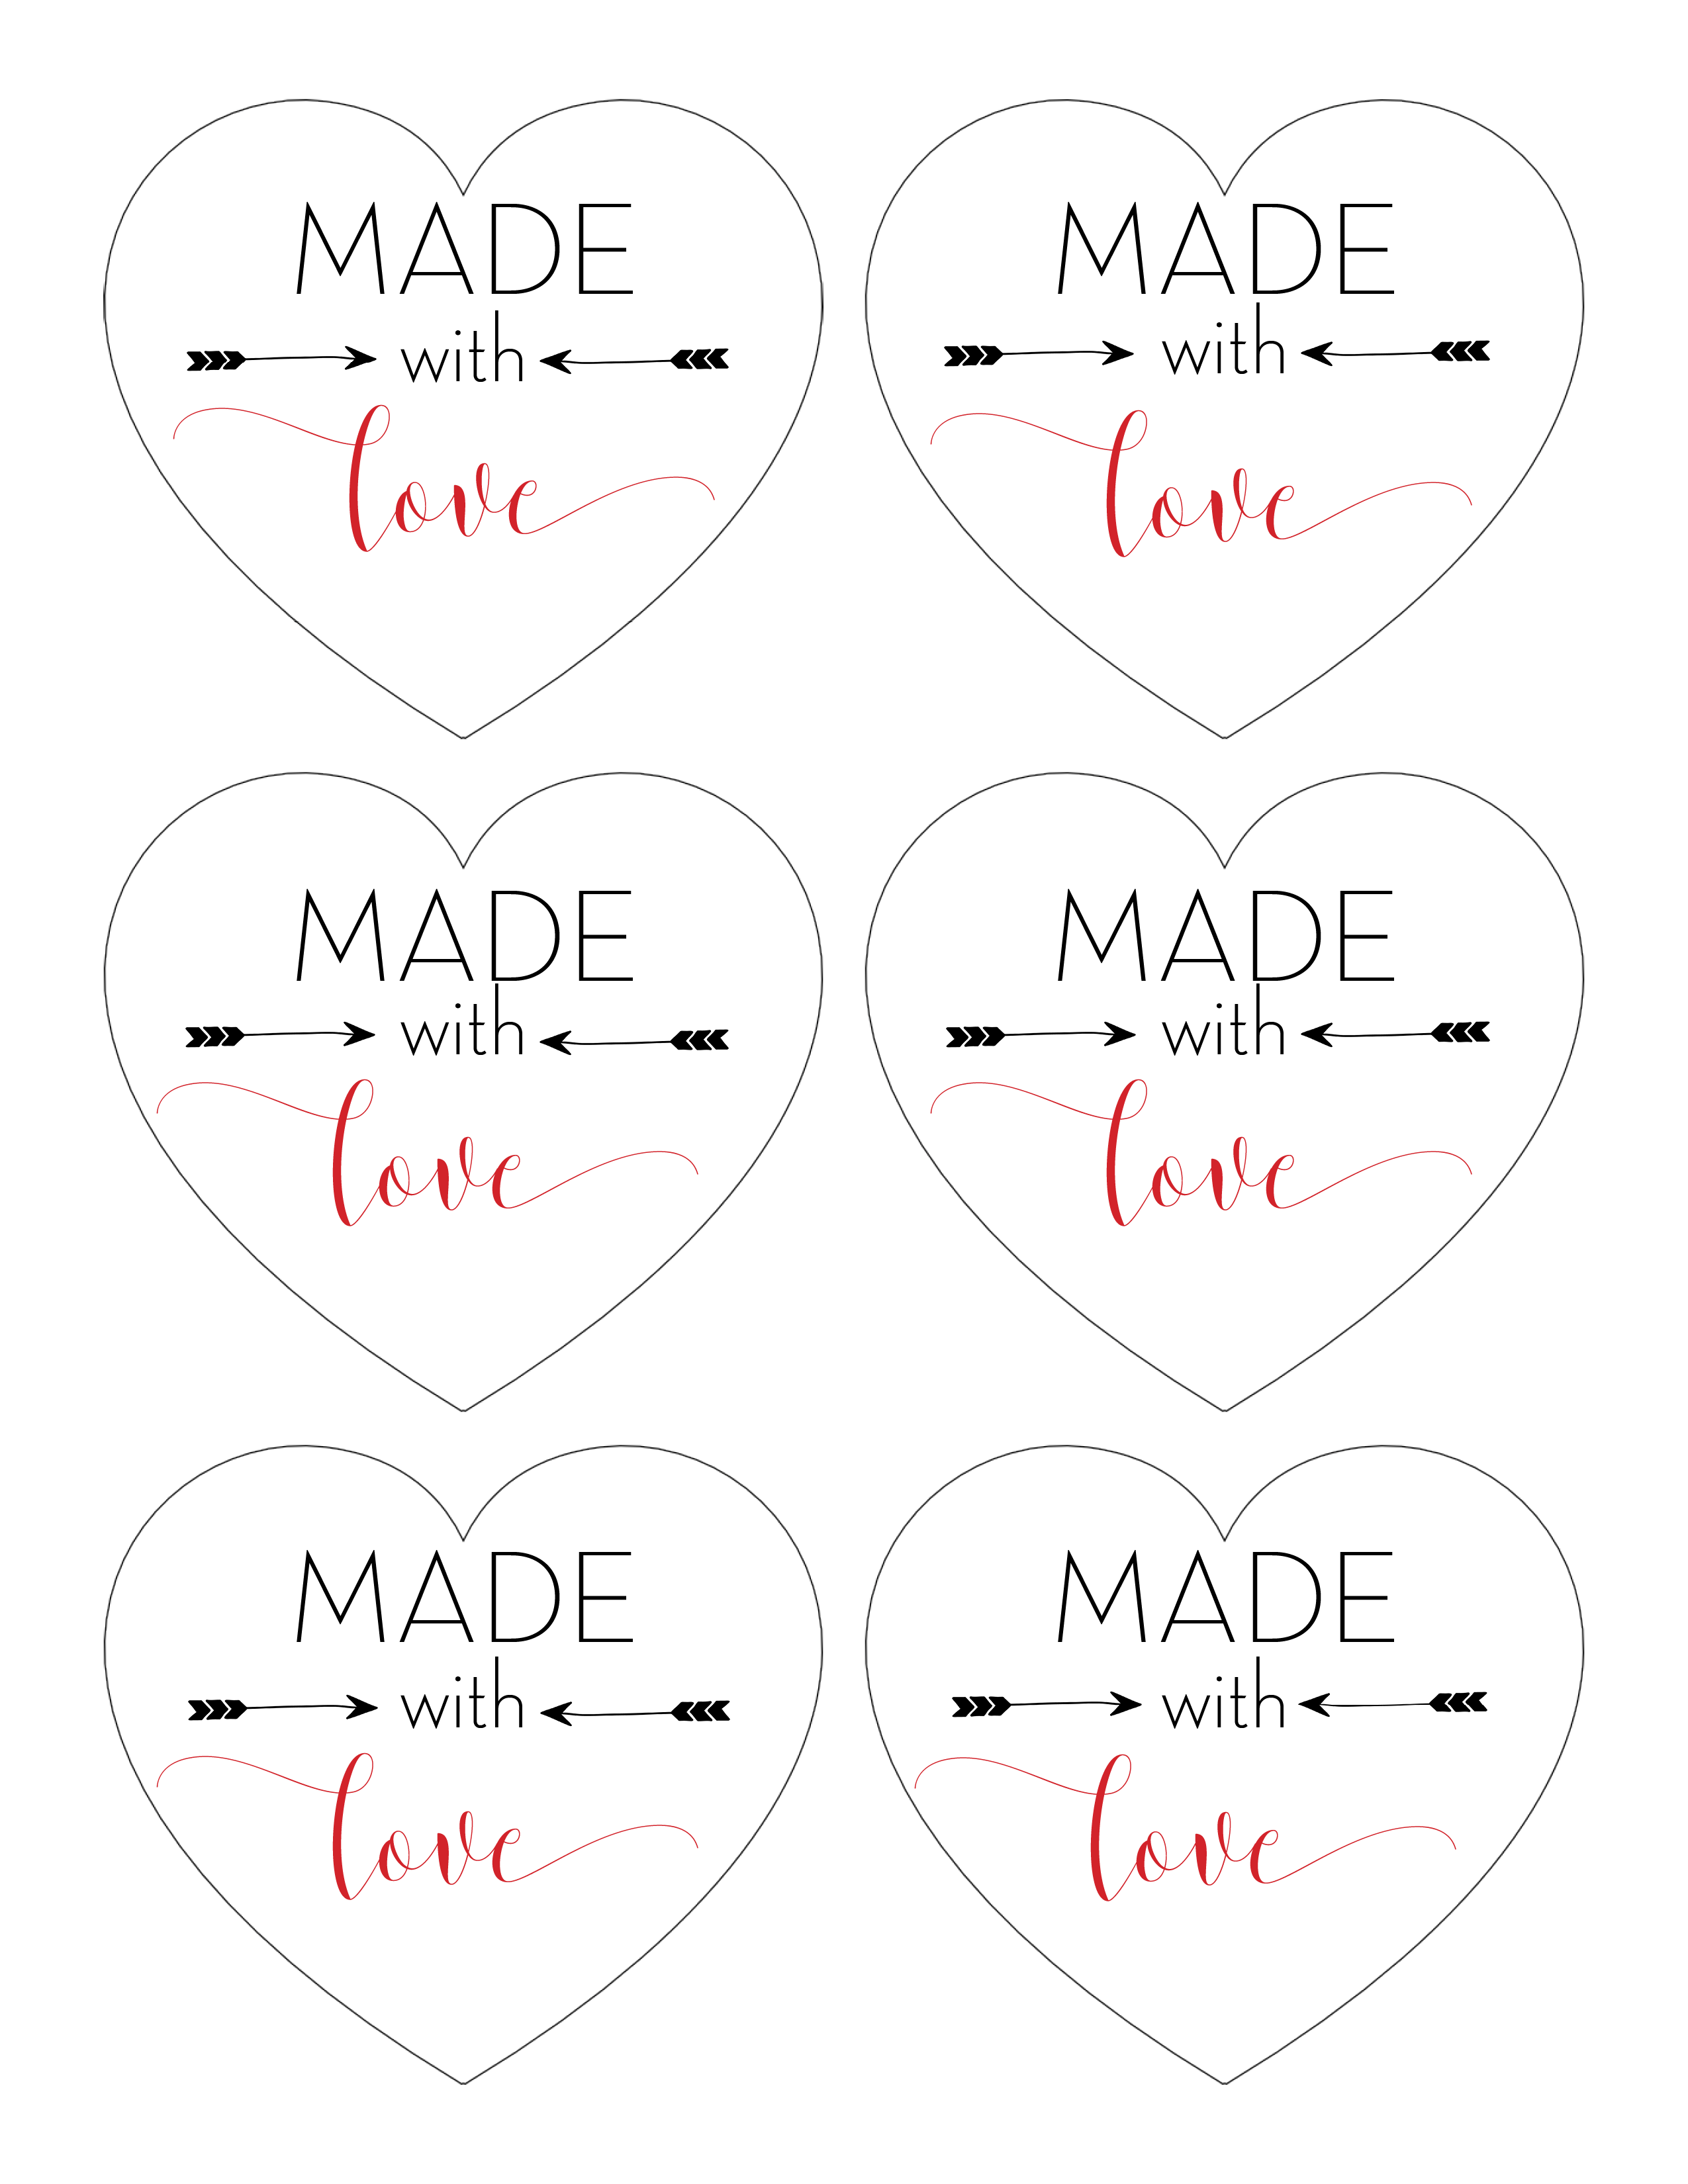 Made with love printable tags for homemade gifts want to give away homemade gifts but not sure what check out these ideas negle Choice Image